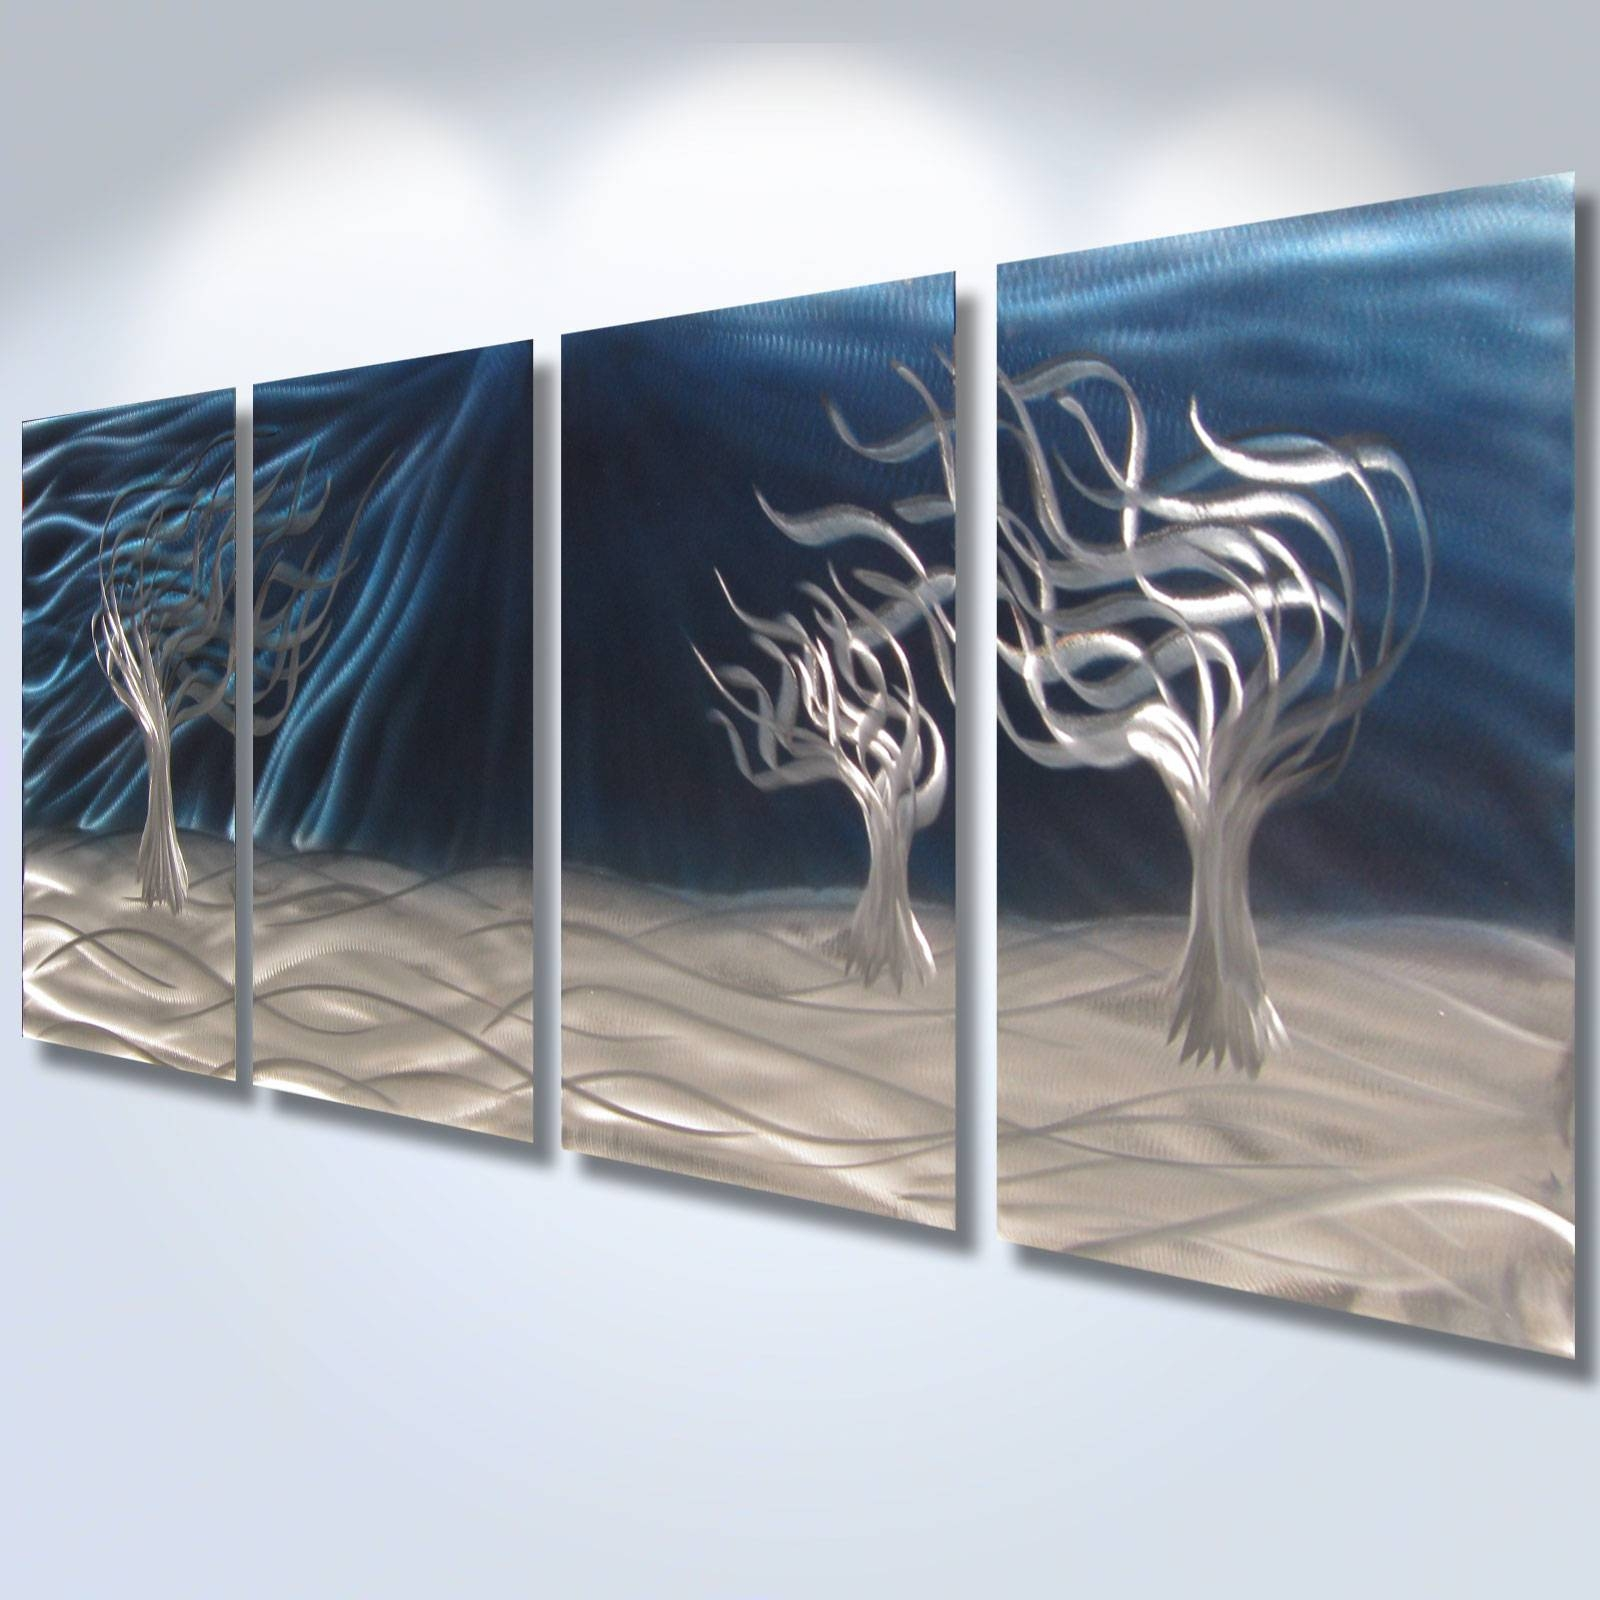 3 Trees Blue – Abstract Metal Wall Art Contemporary Modern Decor With Current Abstract Metal Wall Art (View 1 of 20)